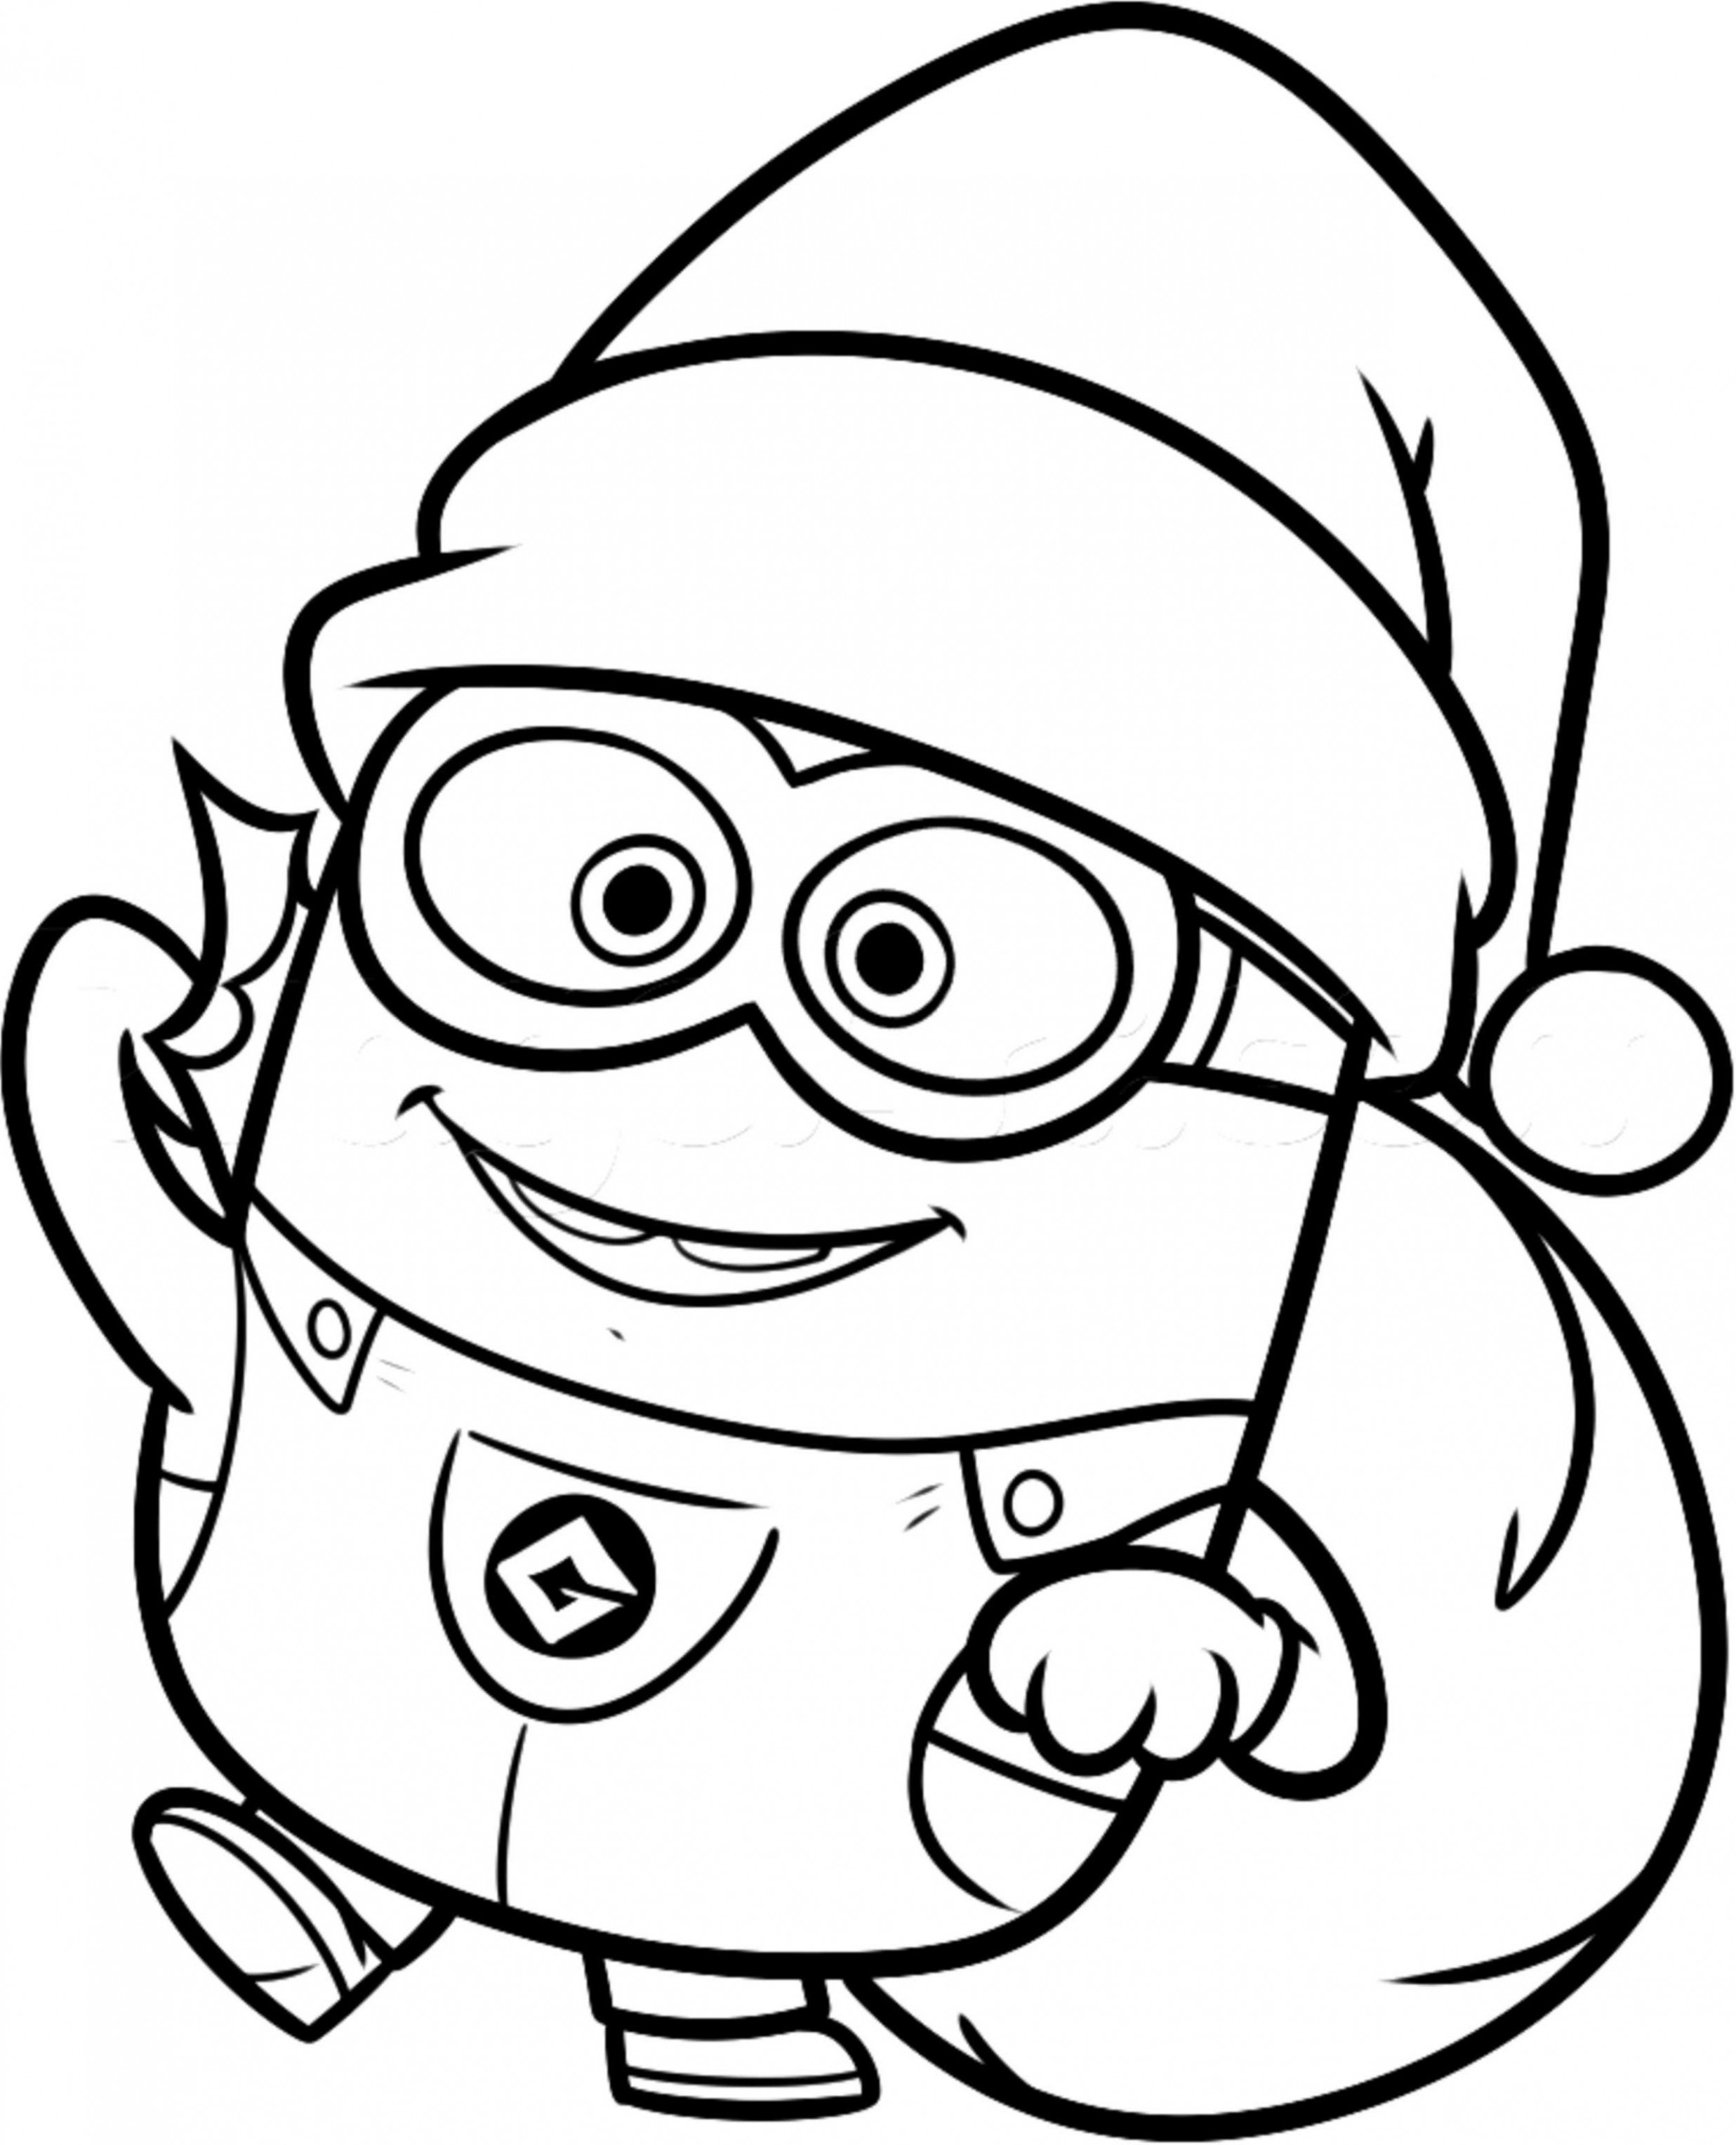 Christmas Minions Coloring Pages | Kids Colouring Pages | Minion ...